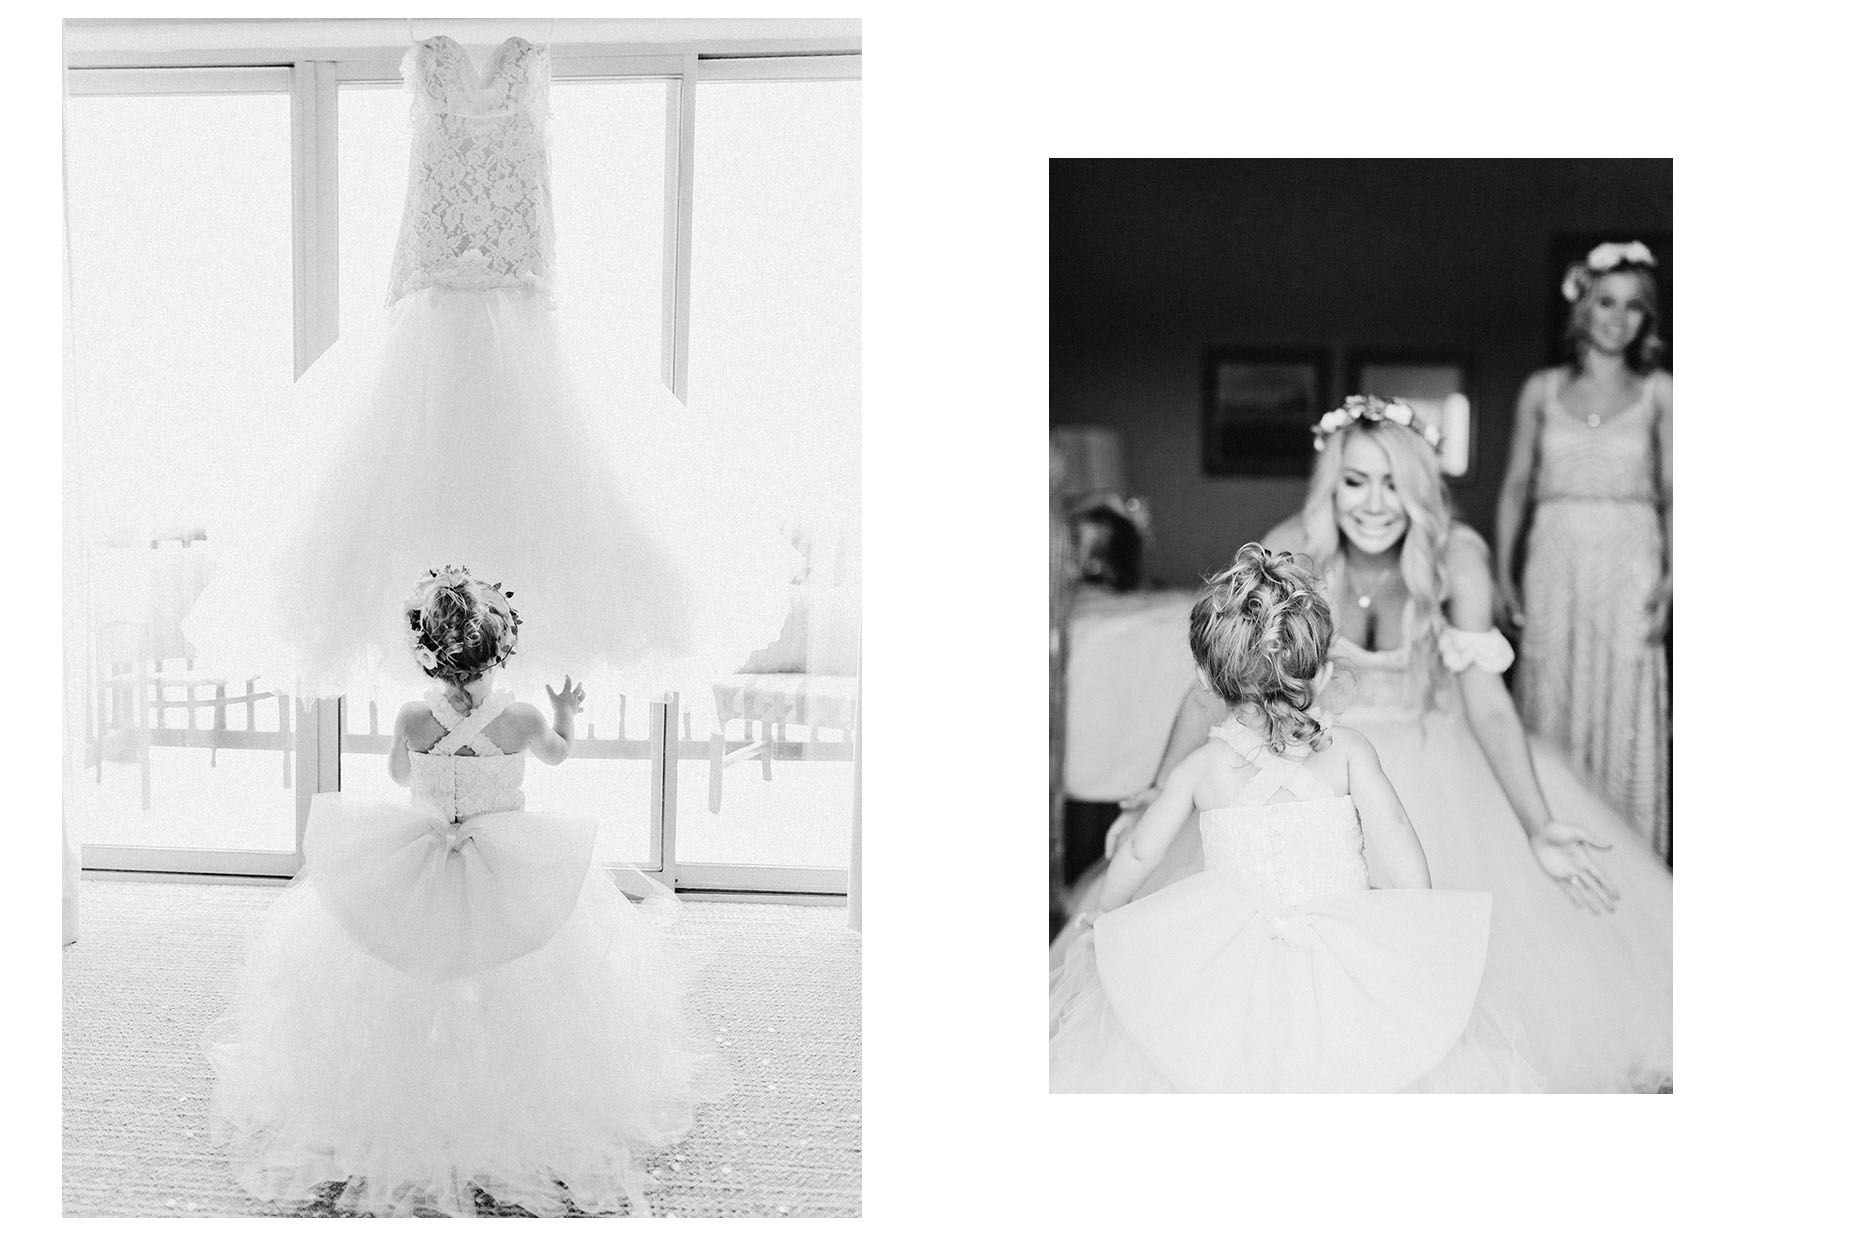 SerraPlazaweddingphotographersanjuancapistranoweddingcreativetopratedphotog